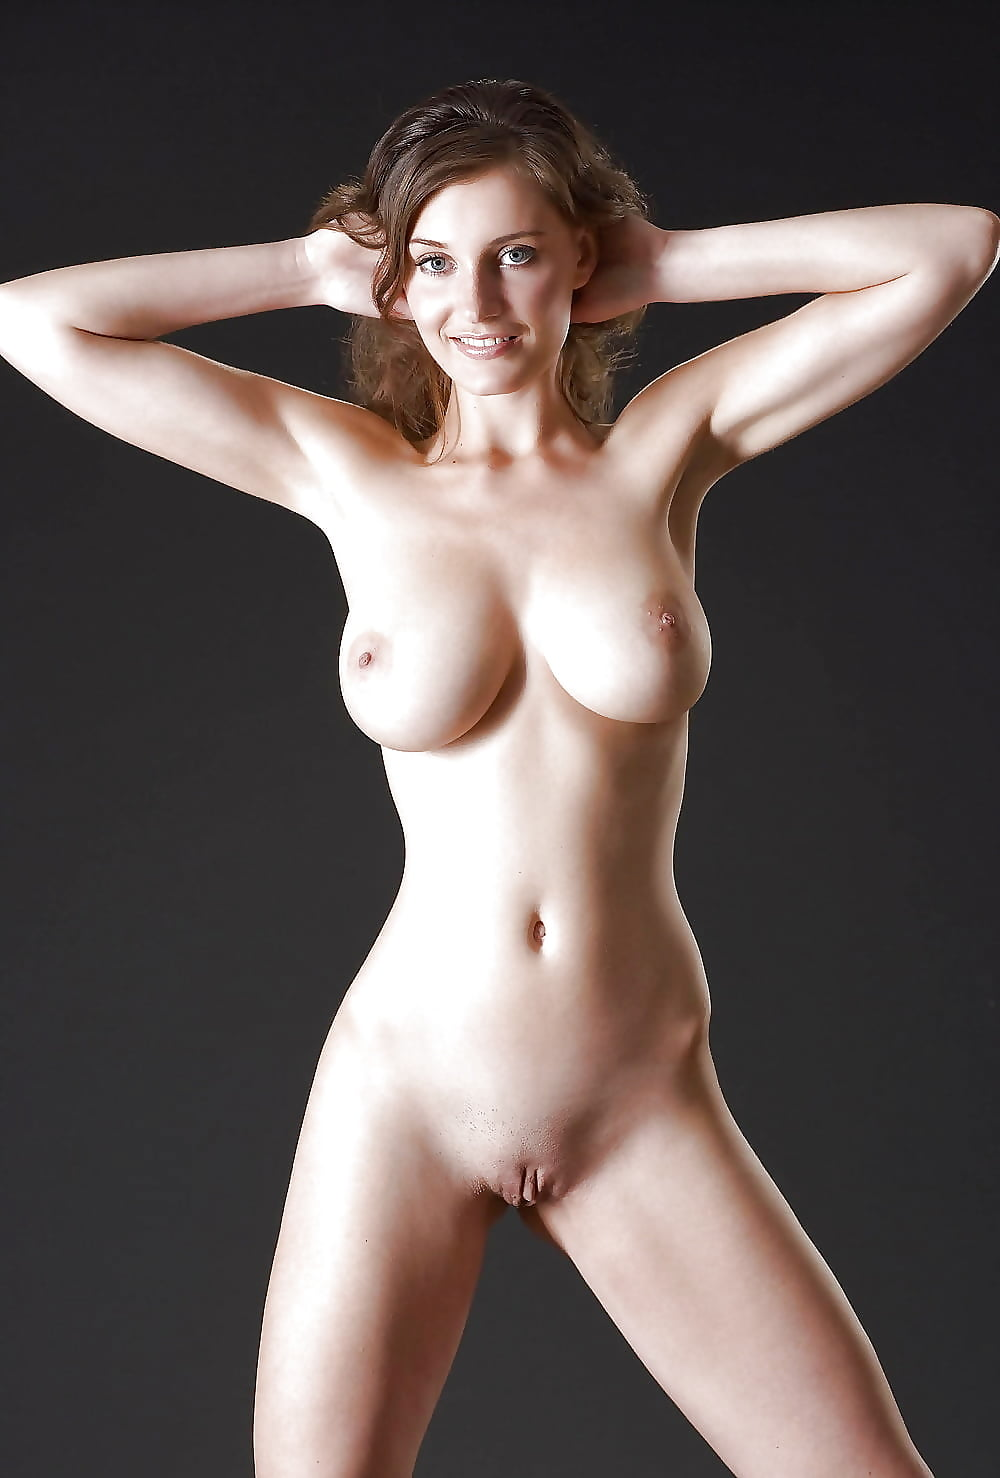 naked-girl-perfection